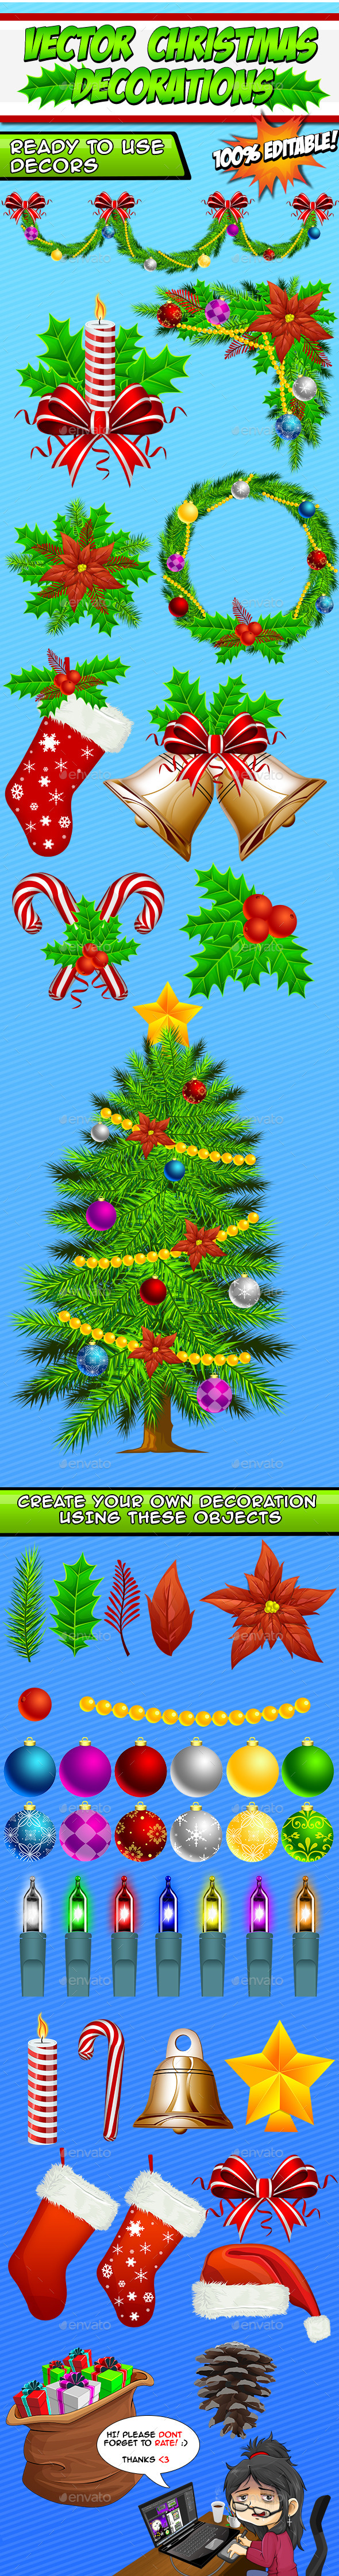 Vector Christmas Decorations - Create Your Own - Illustrations Graphics